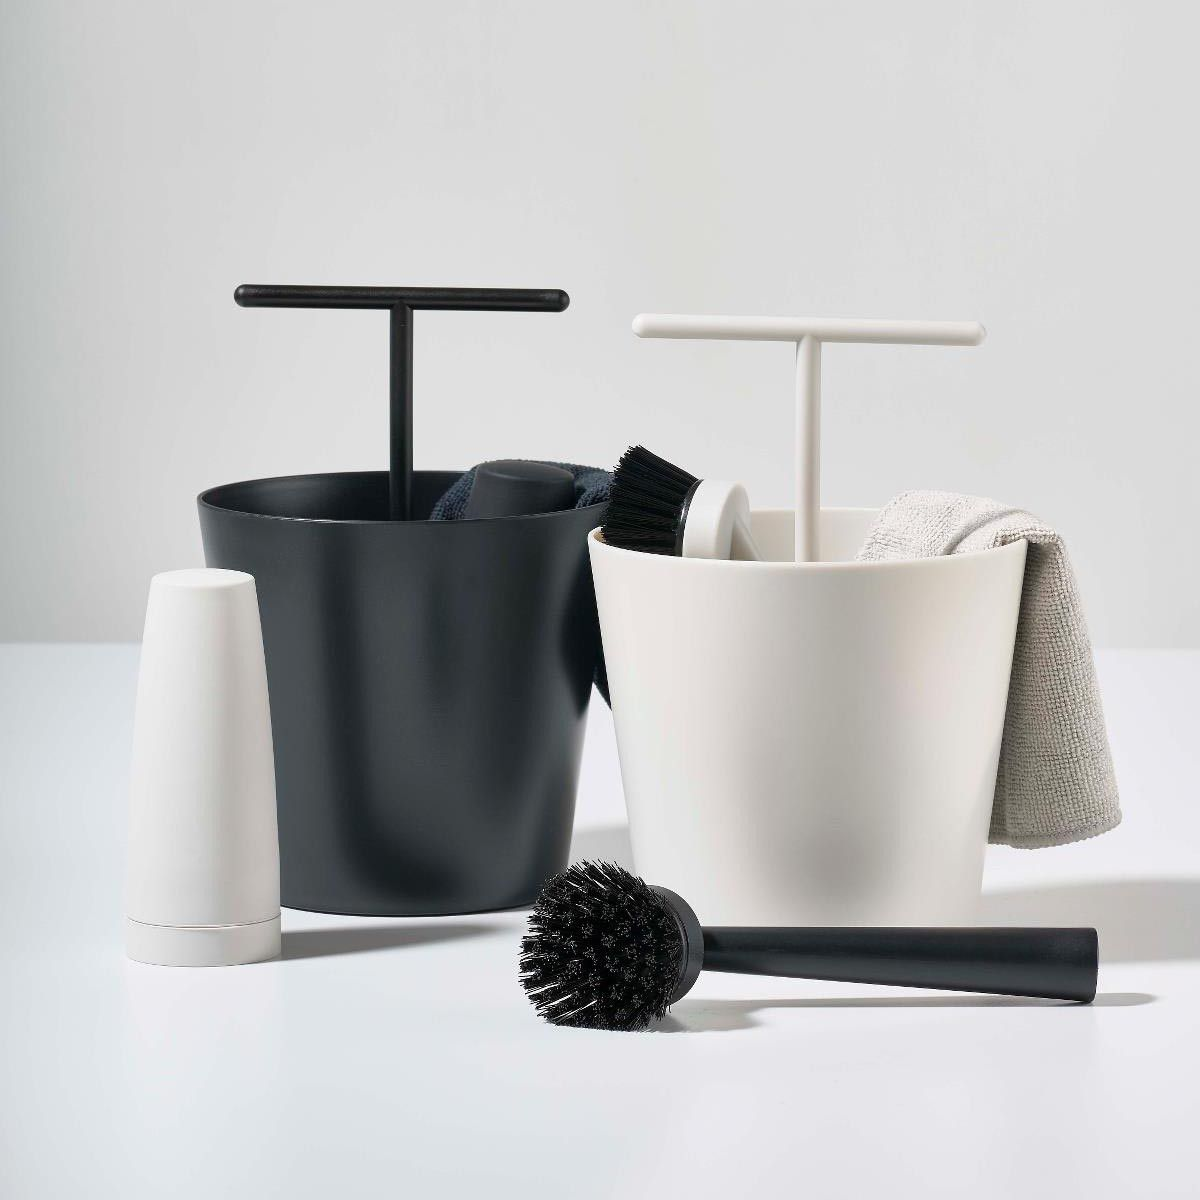 Ume Series Bathroom Accessories By Zone Denmark Bathroom